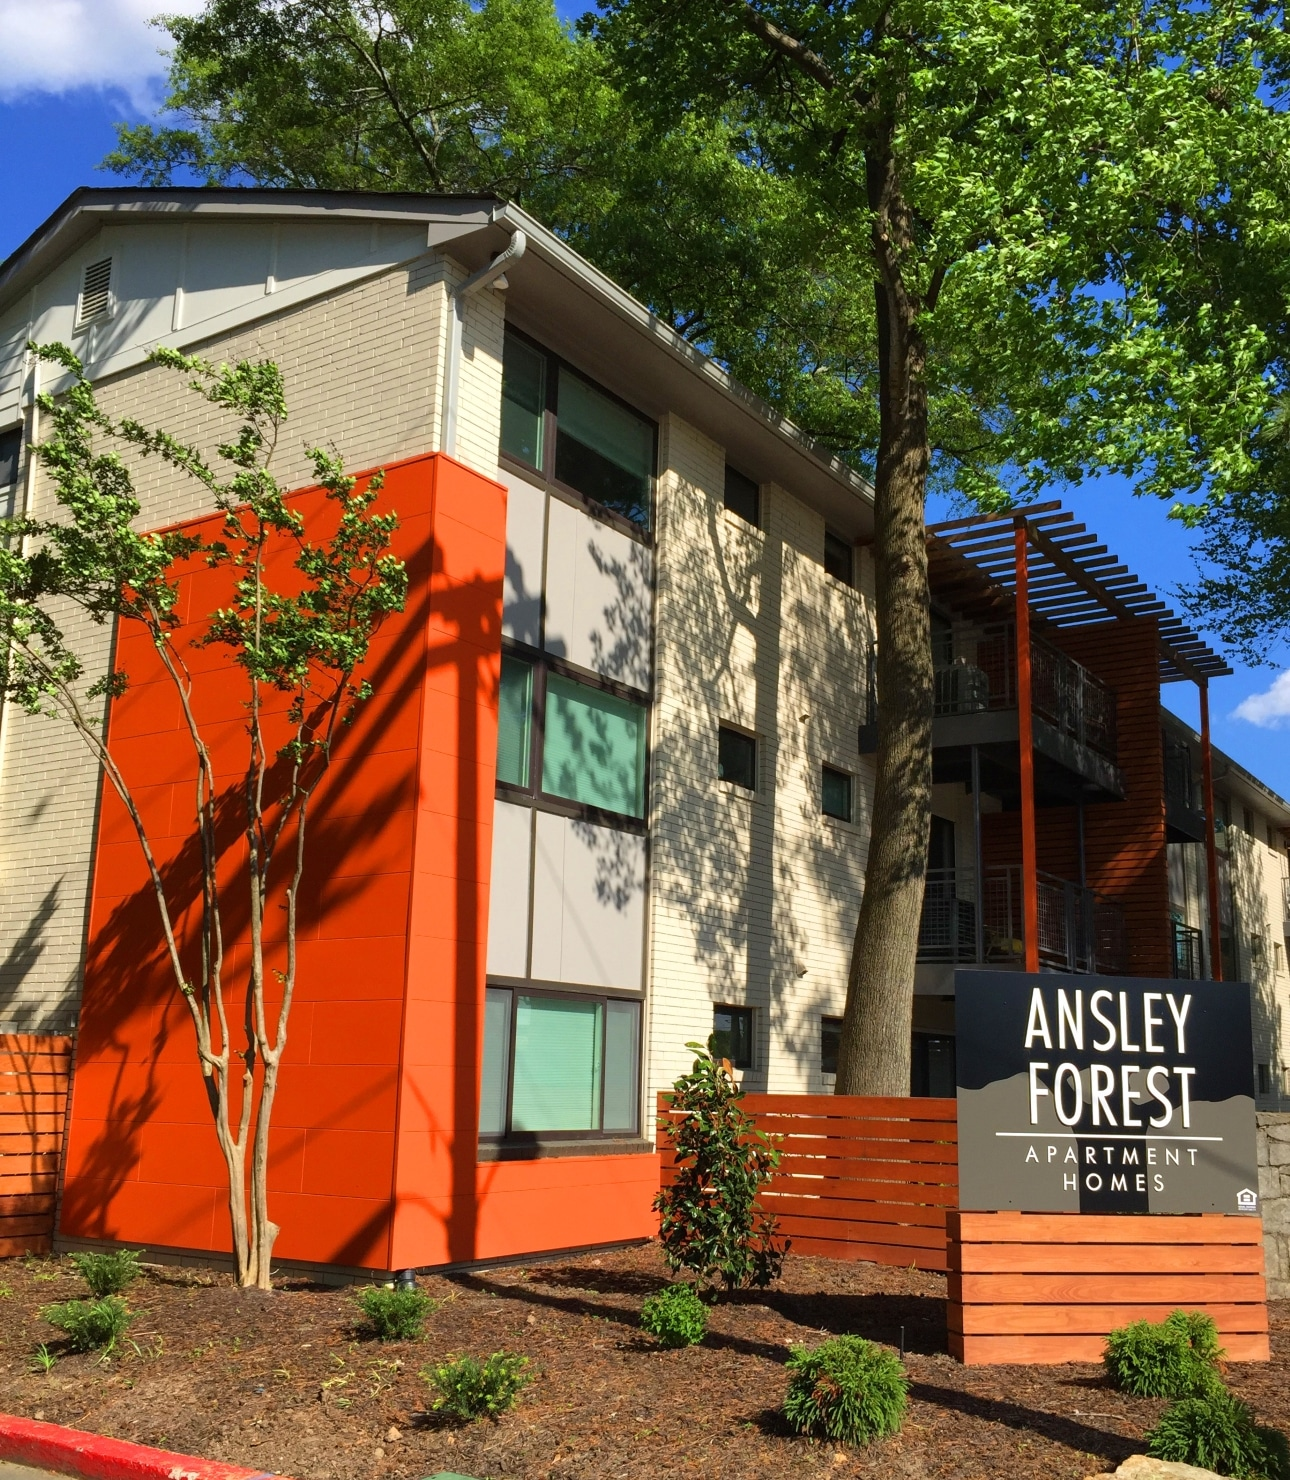 Ansley Forest Apartments Renovation Repurposing